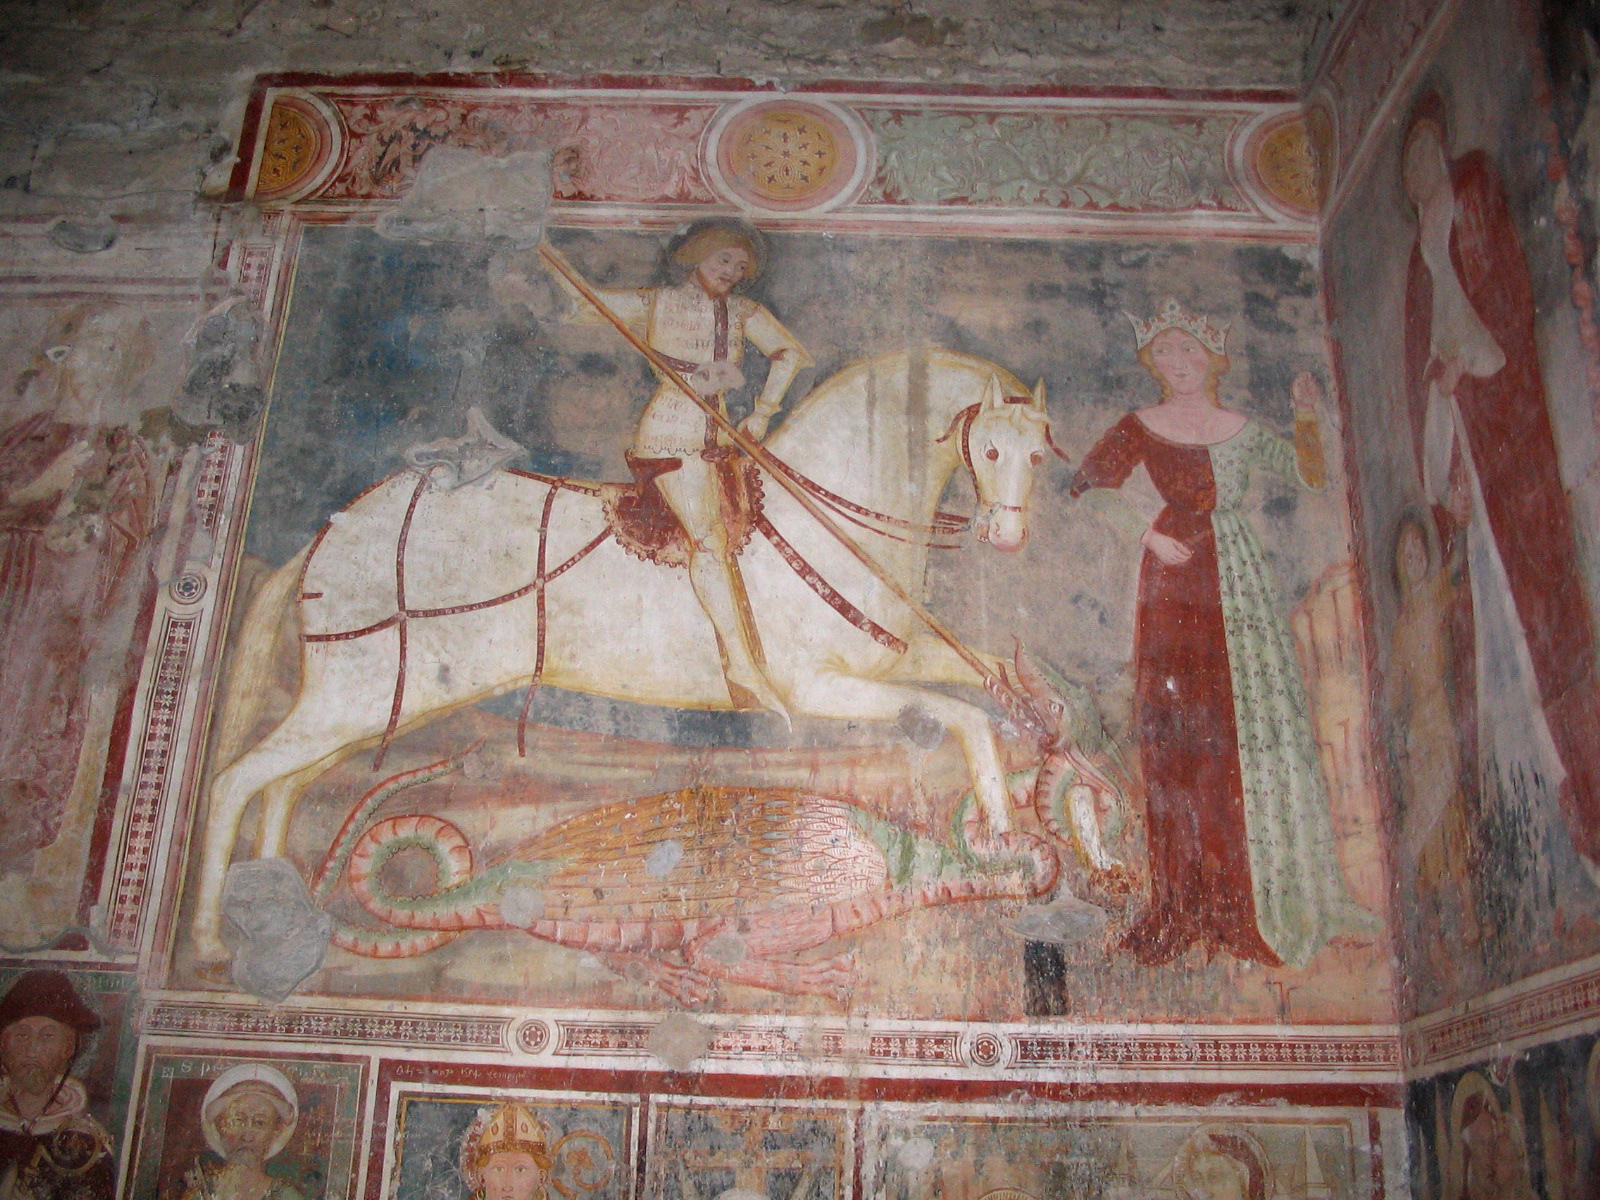 https://upload.wikimedia.org/wikipedia/commons/6/68/Affresco_-_%22San_Giorgio_e_la_Principessa%22,_attribuito_al_%22Maestro_del_1388%22.jpg